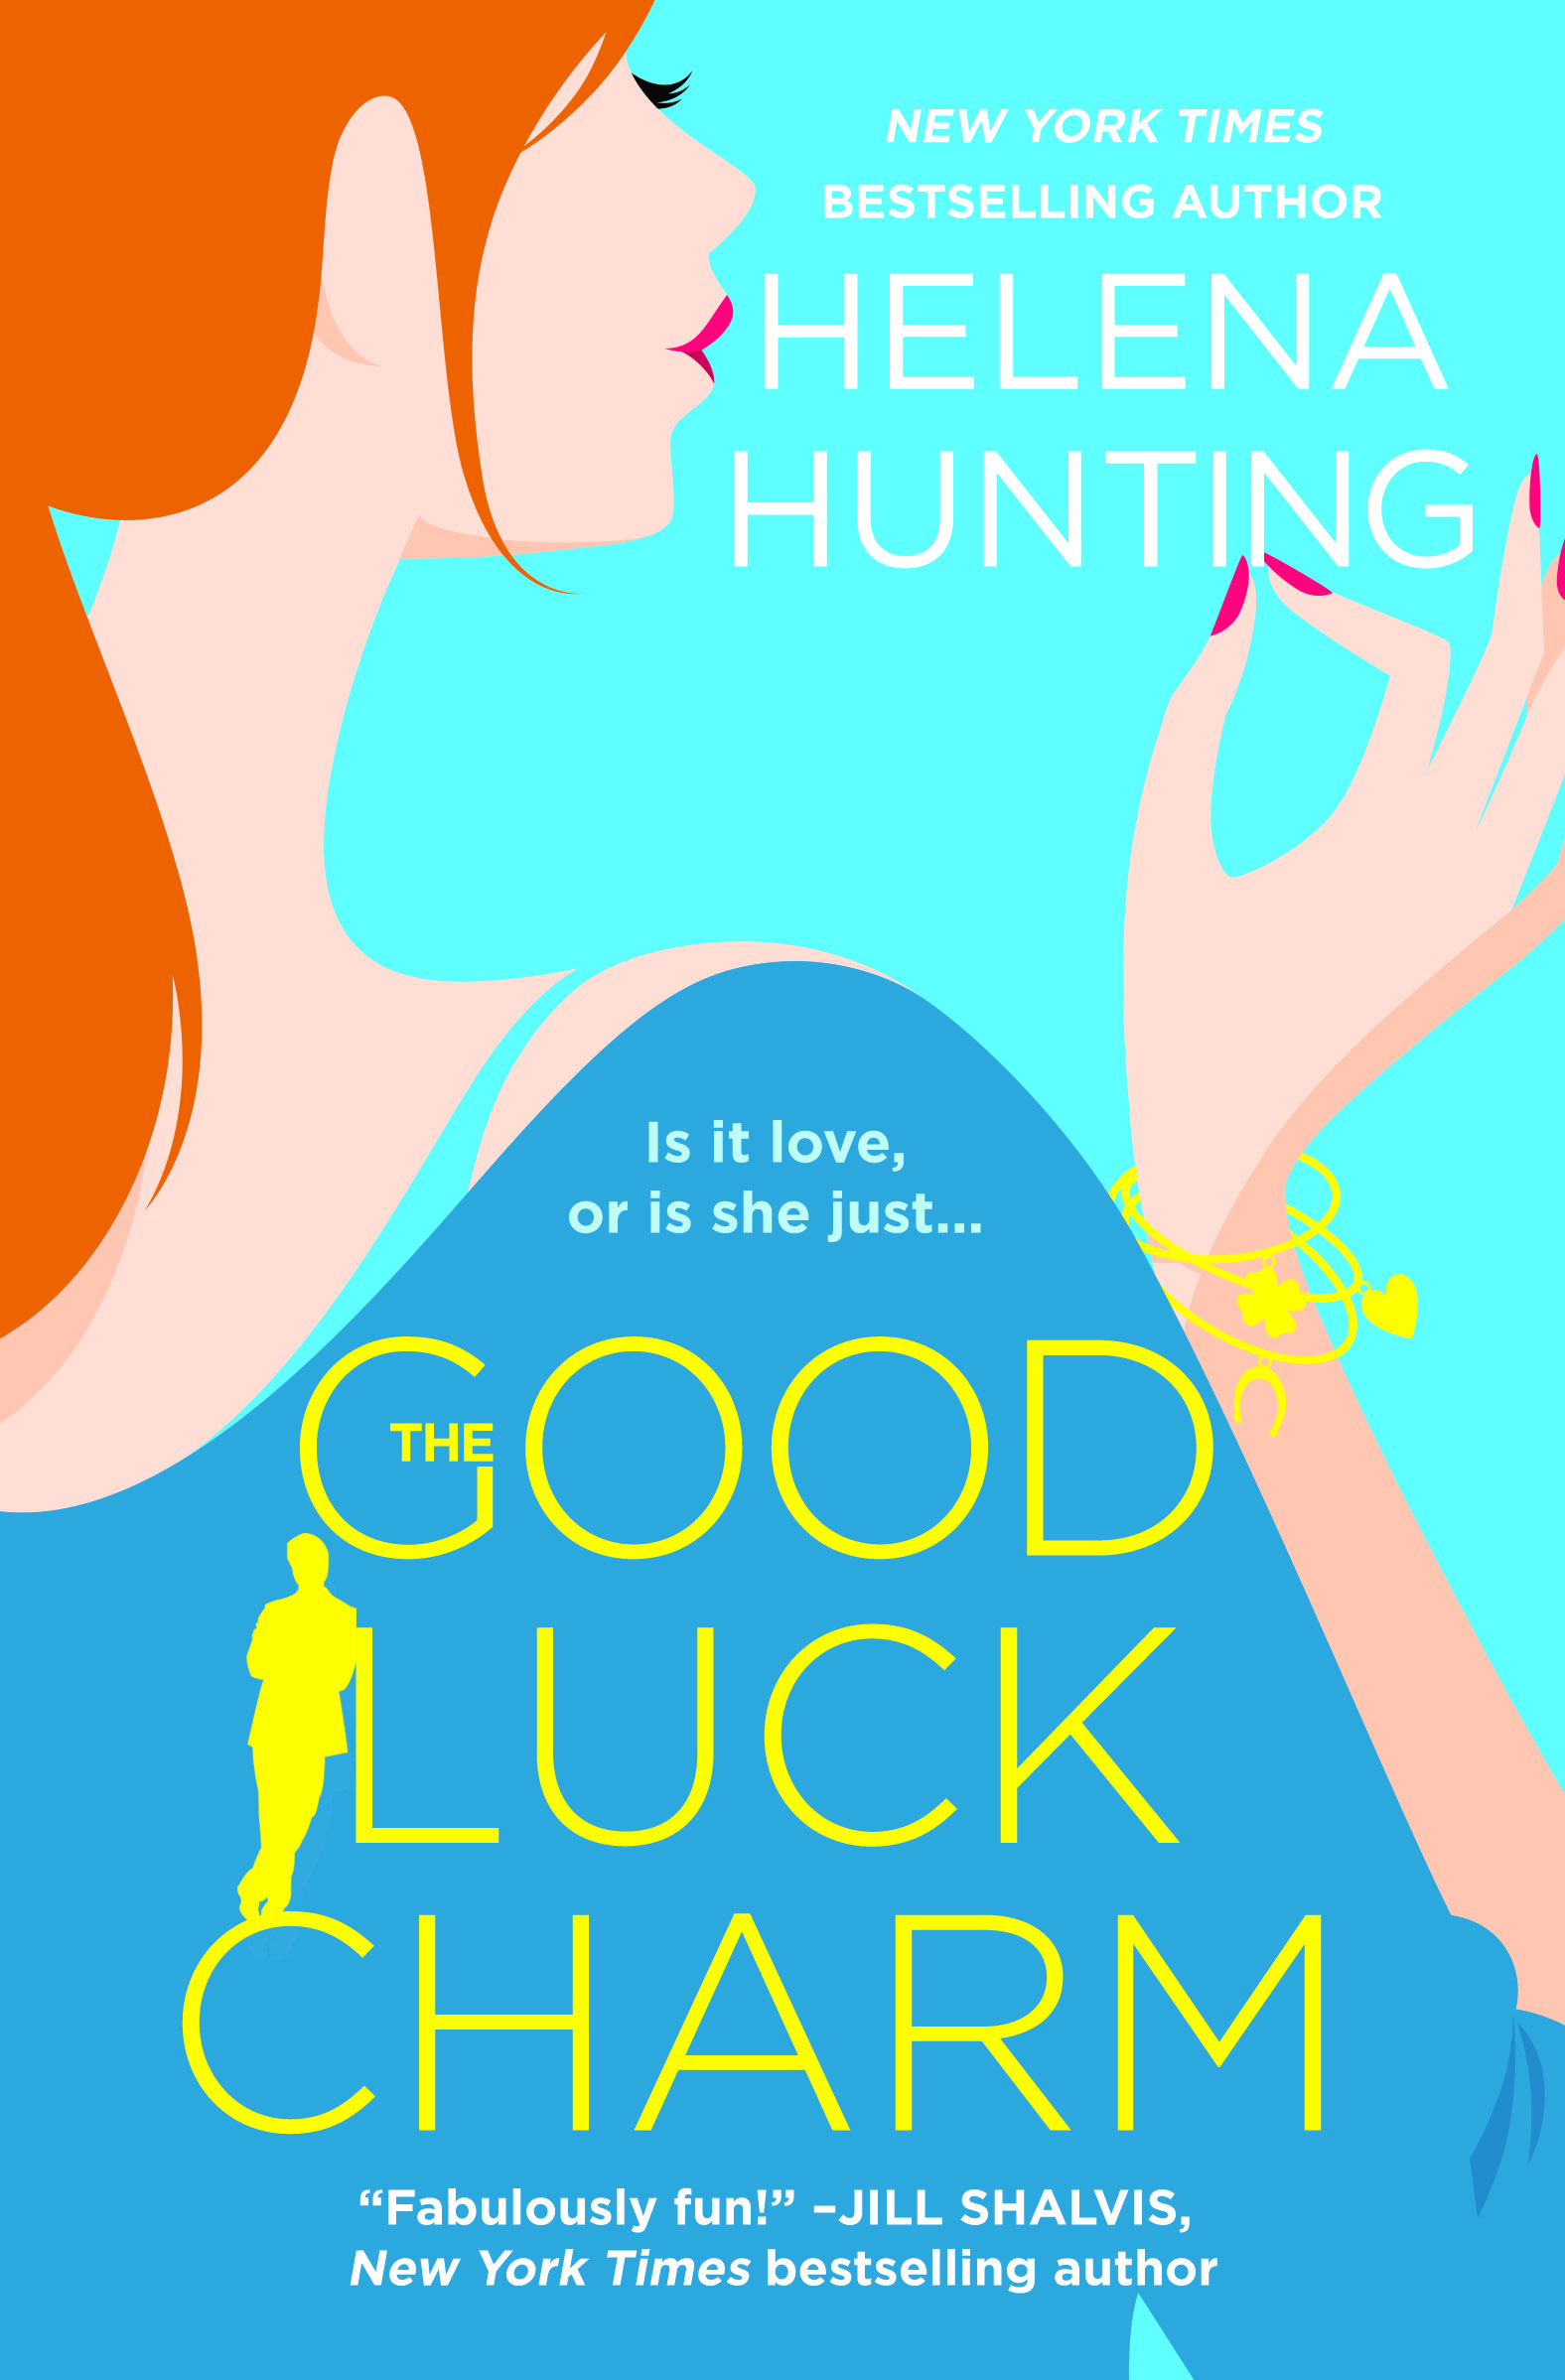 THE GOOD LUCK CHARM Cover – Helena Hunting